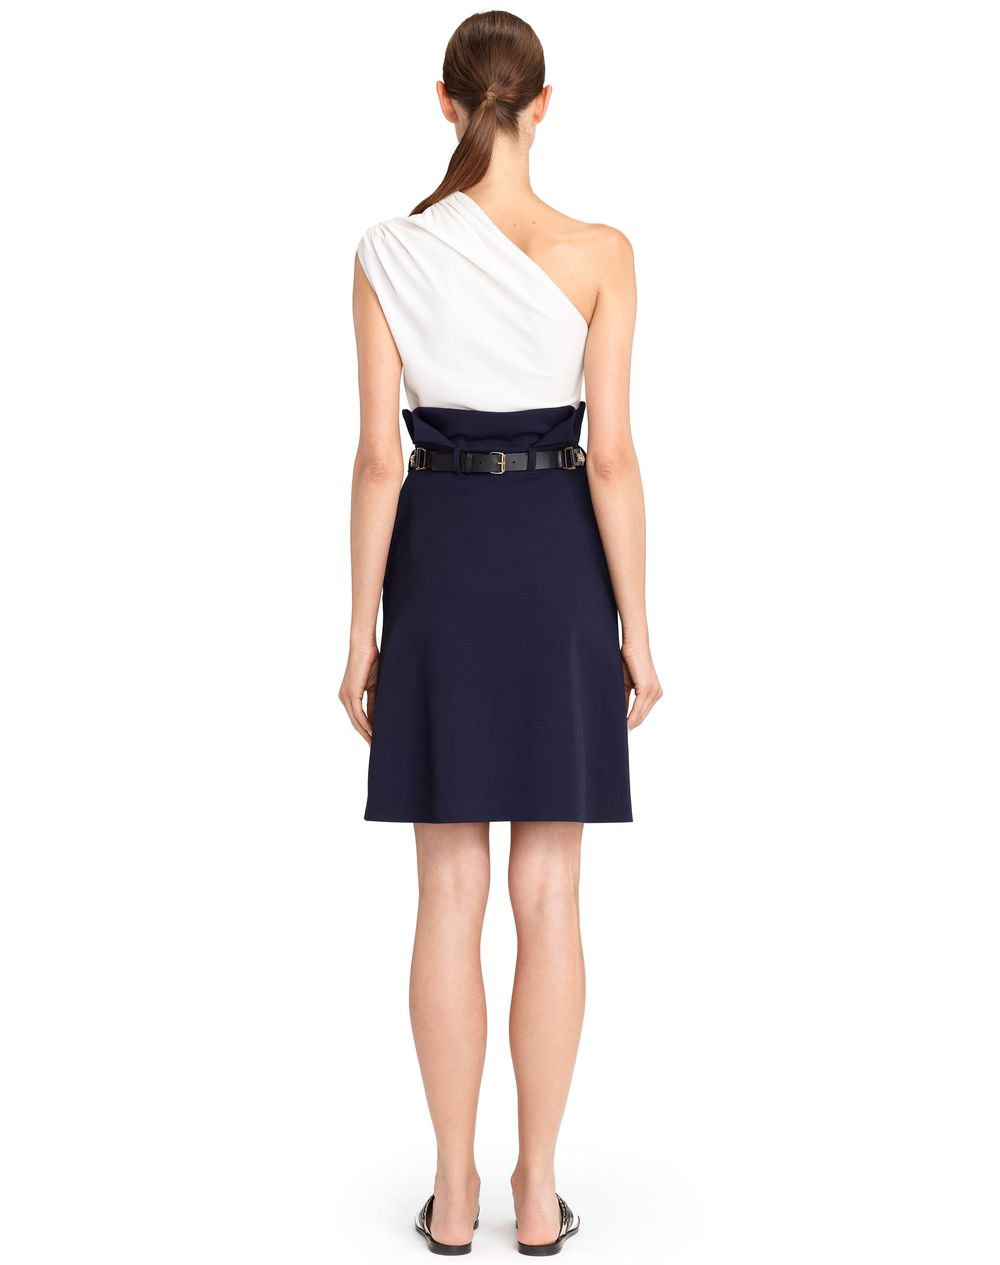 HIGH-WAISTED SKIRT - Lanvin